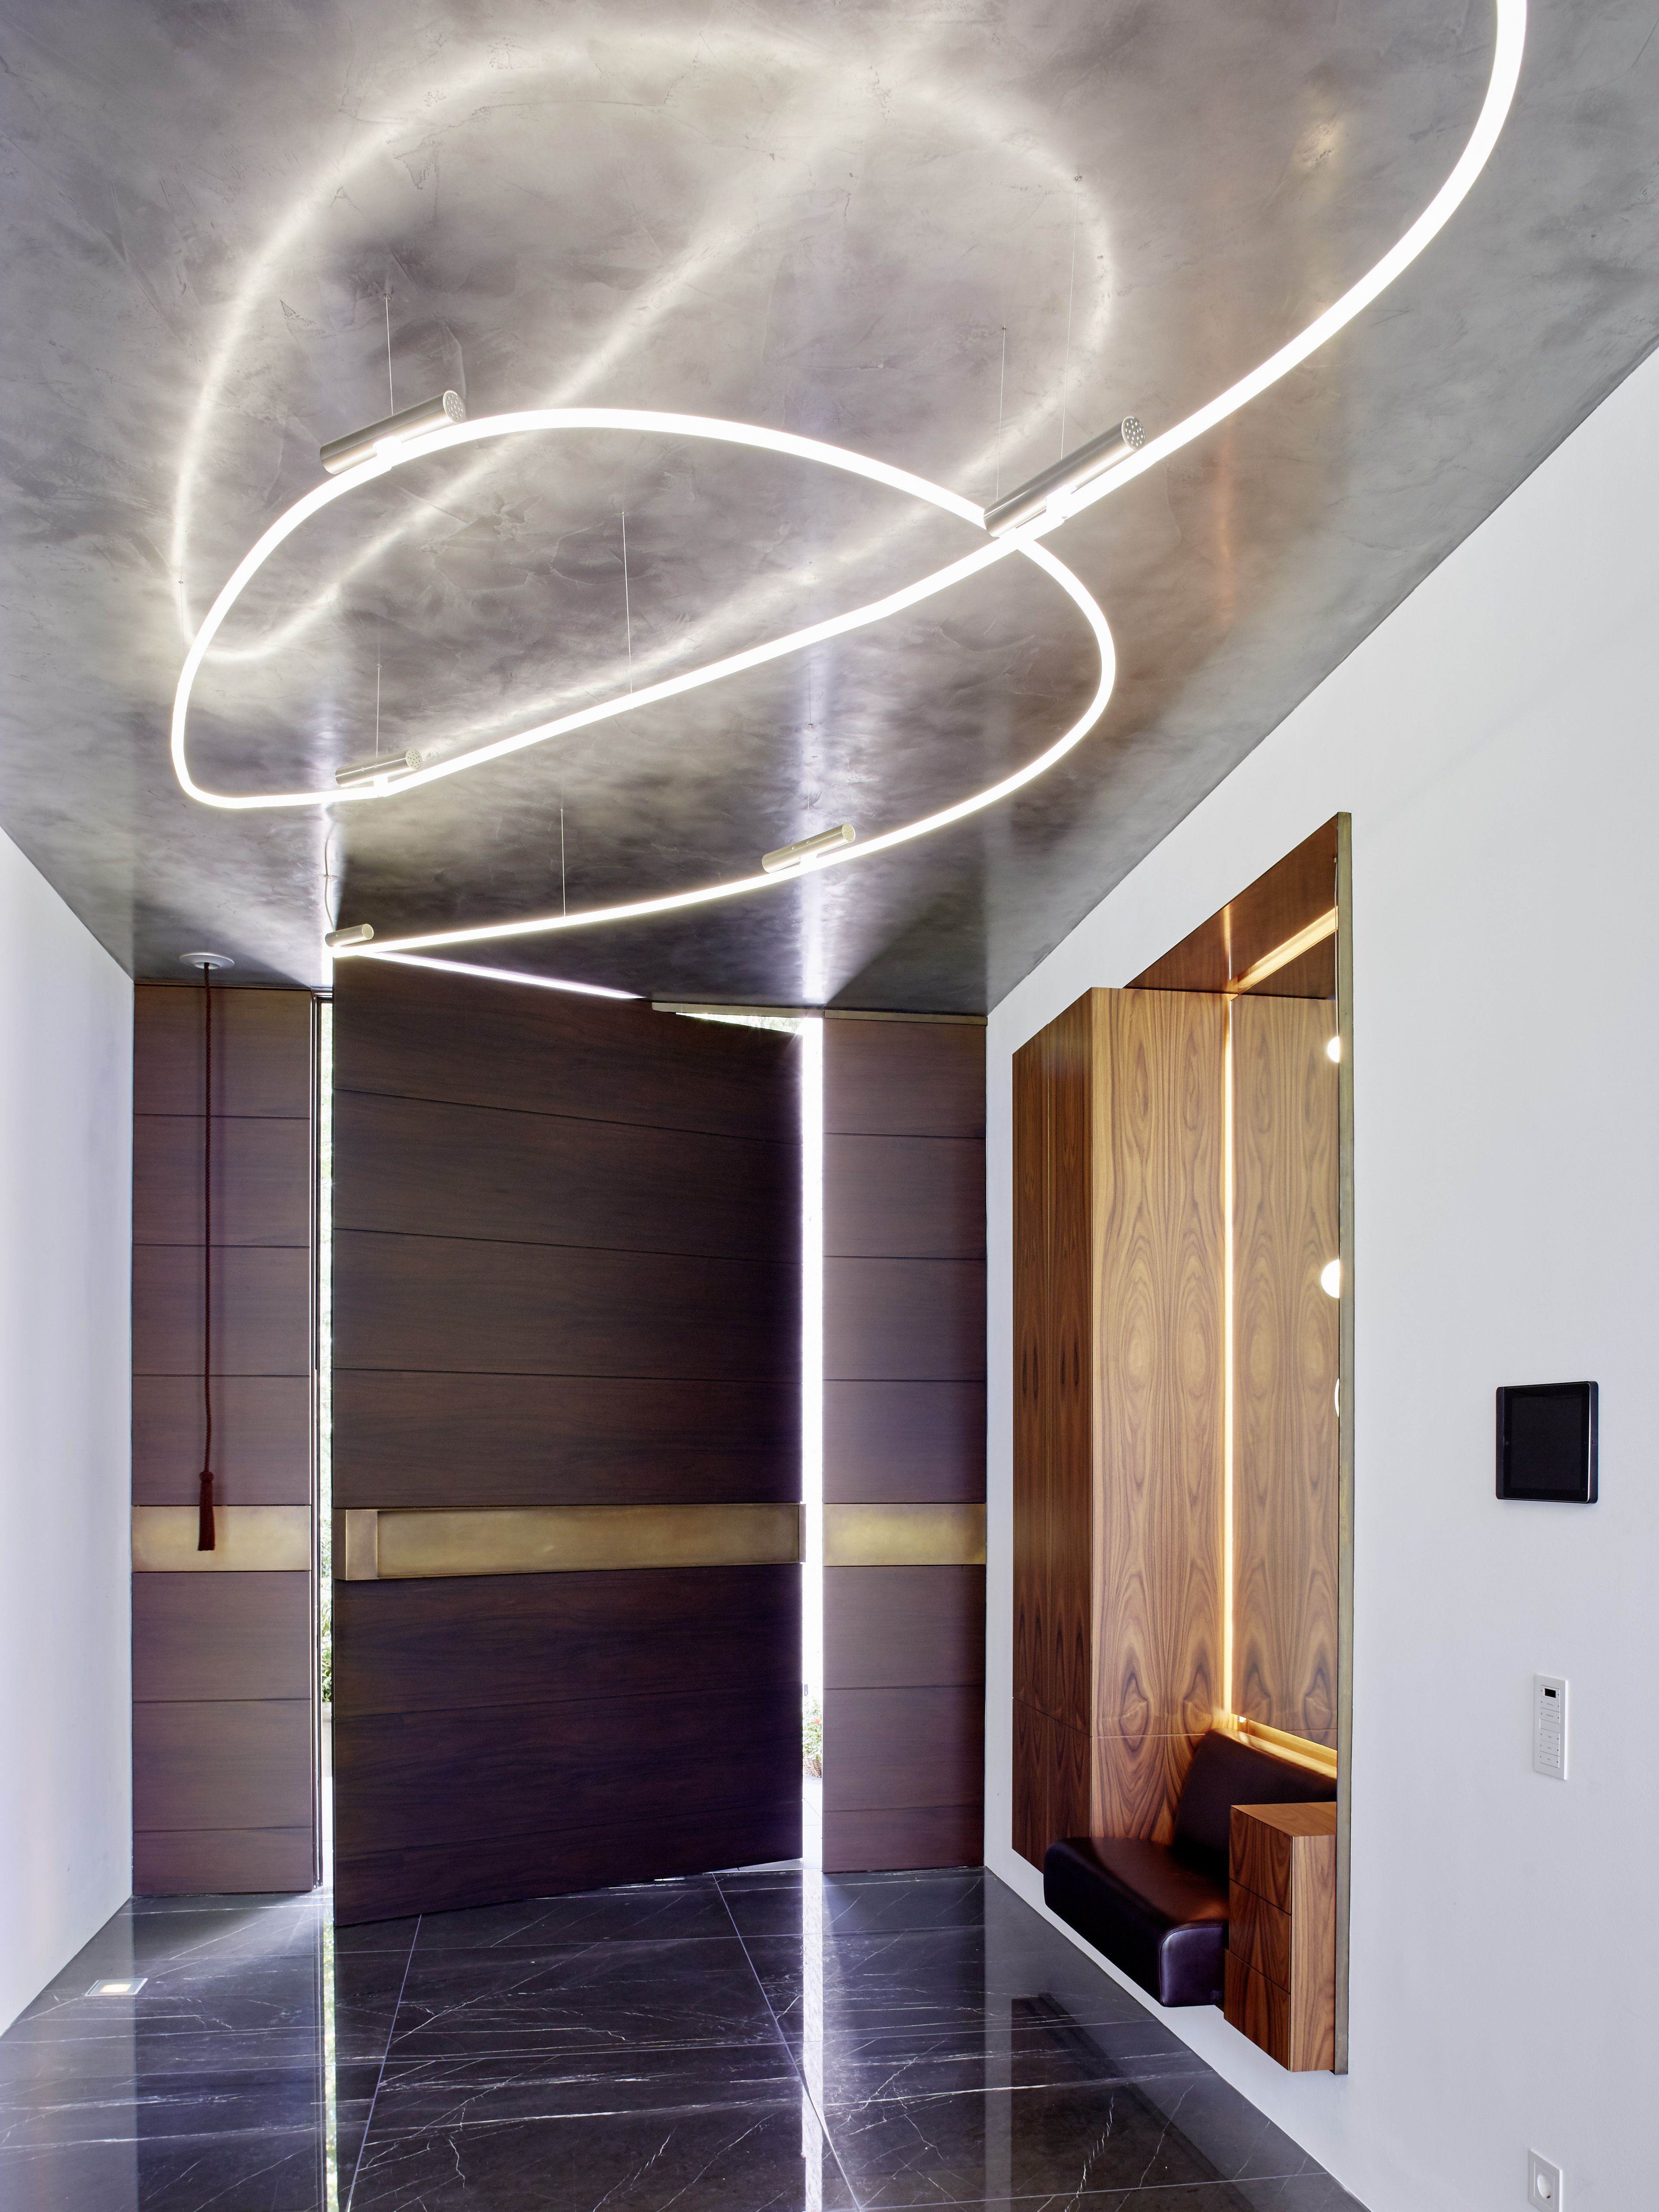 The entrance hall features a seventeen metre long neon chandelier'  suspended from a metallic-coated ceiling.